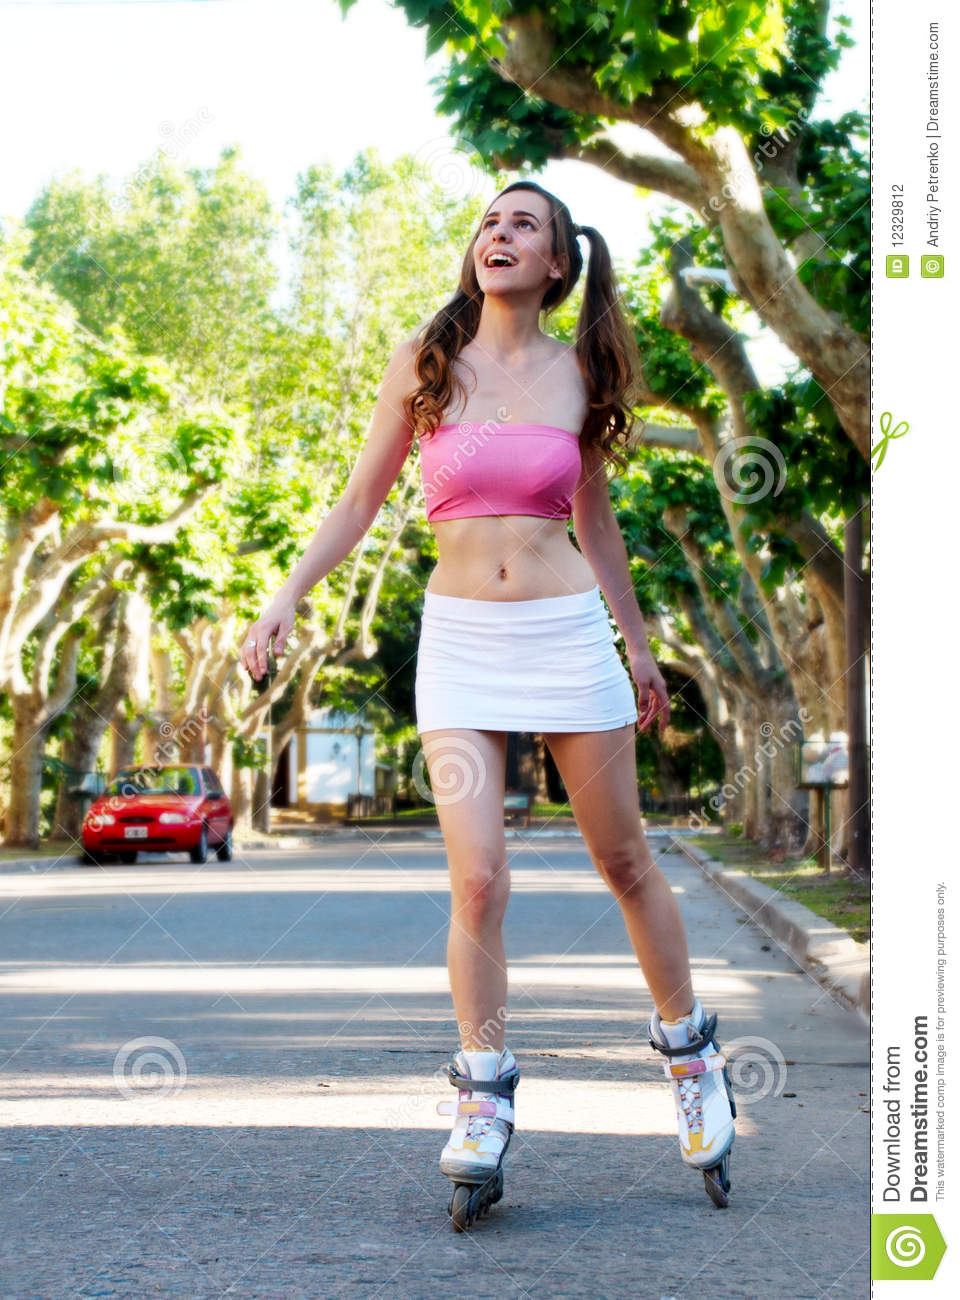 Pretty girl rollerblading stock photo. Image of ...